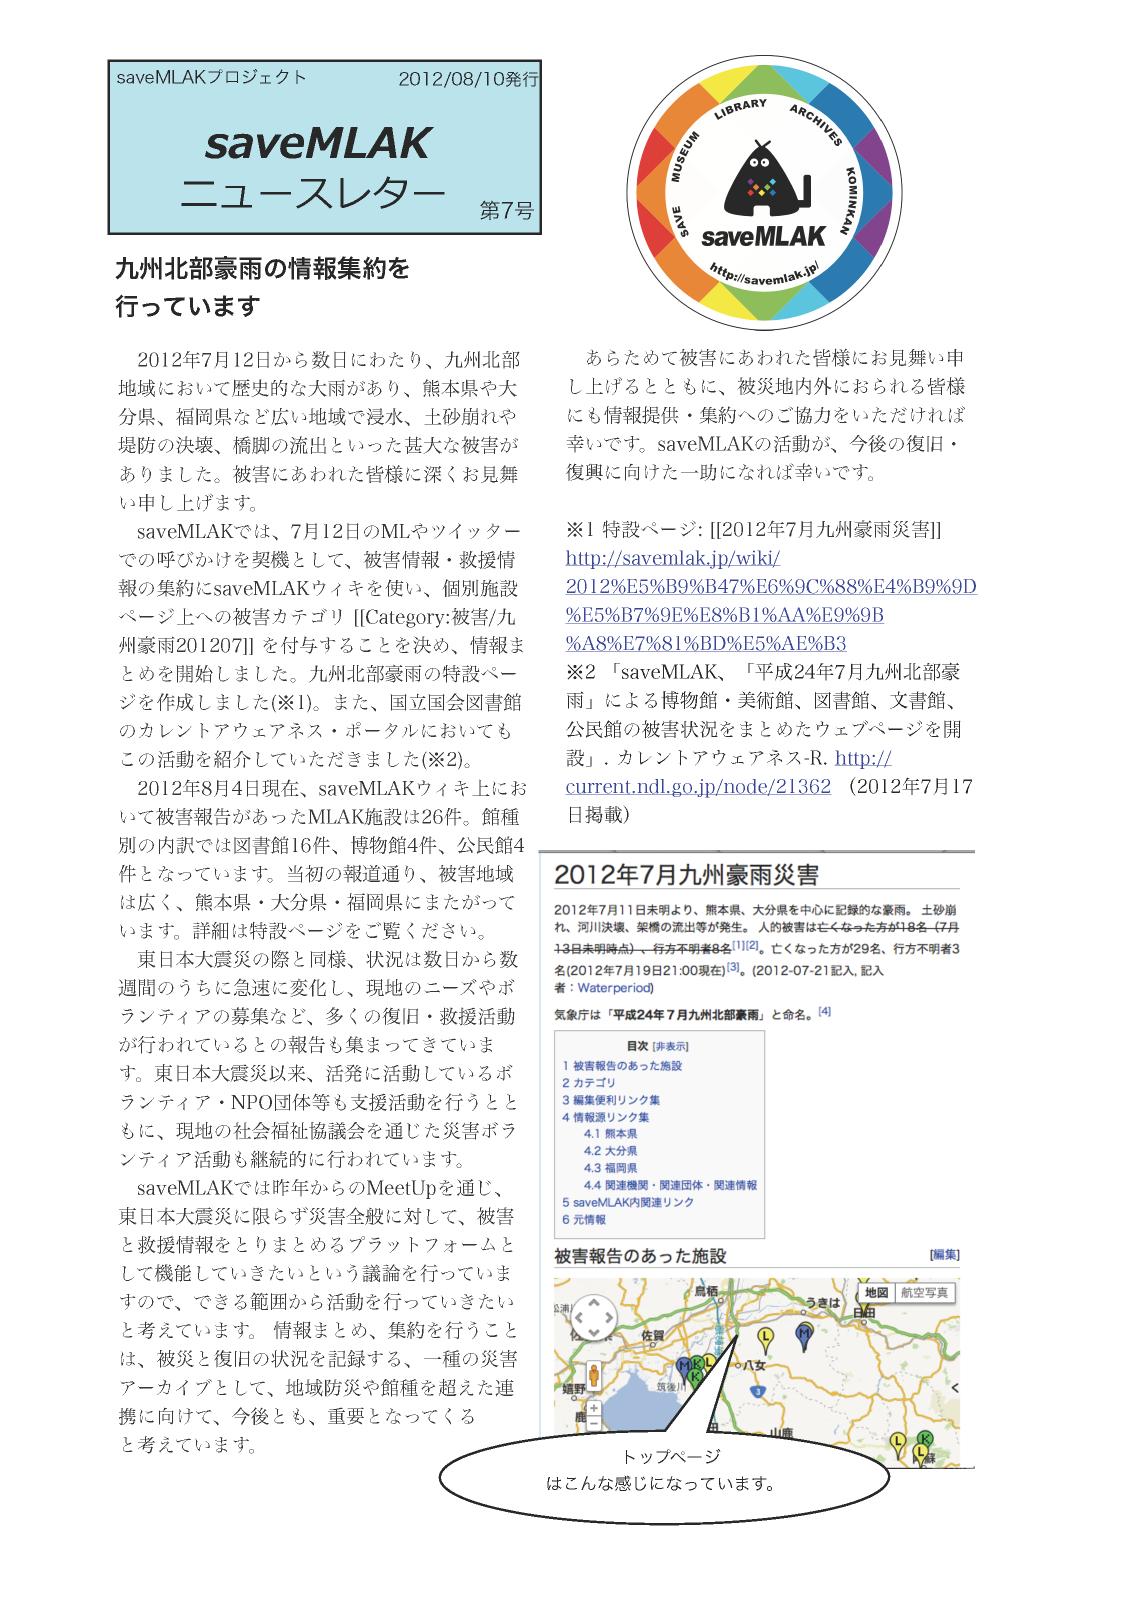 saveMLAK-newsletter-201208-p1.png